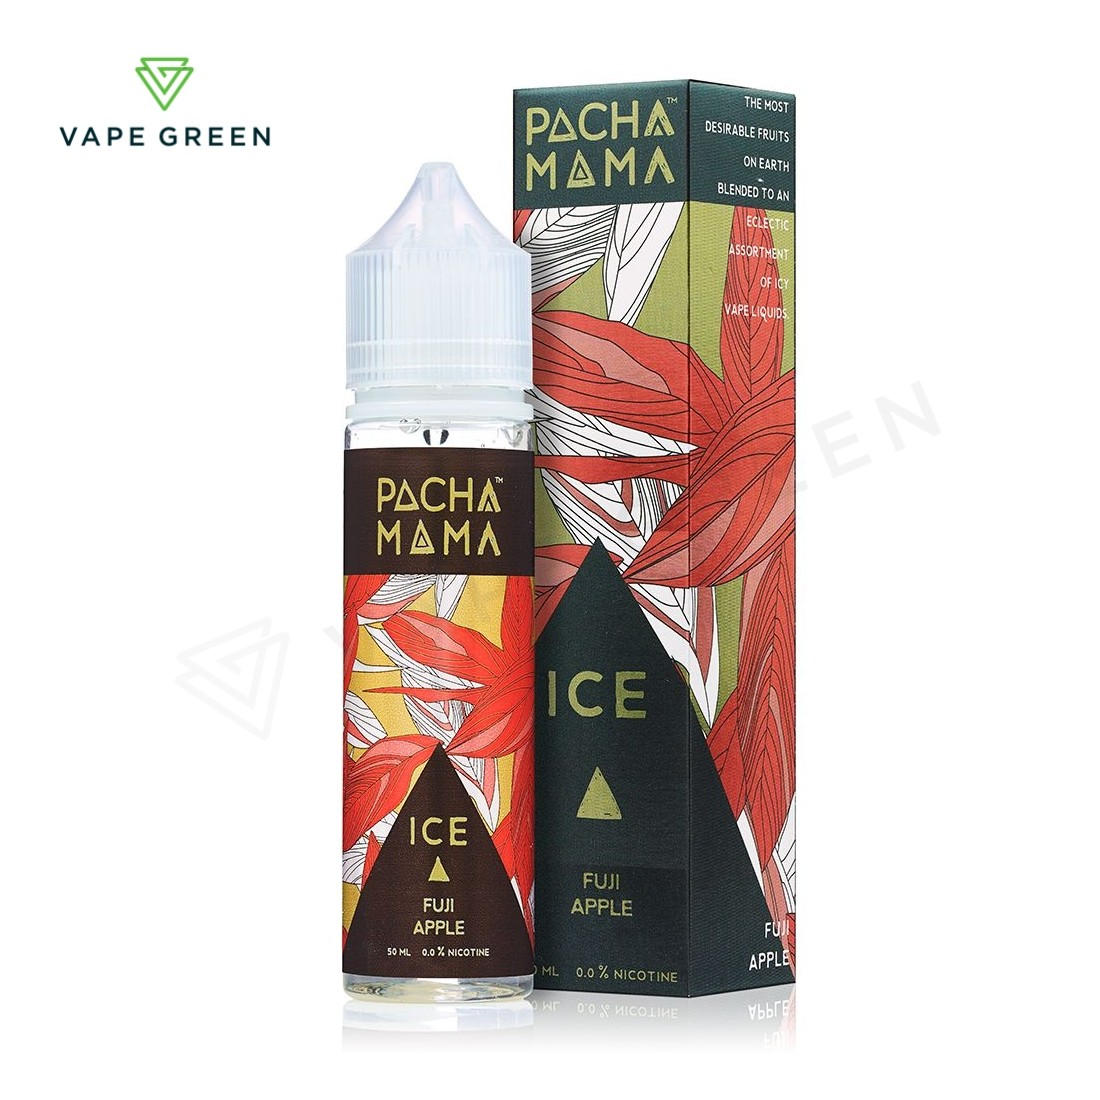 Fuji Apple, Strawberry Nectarine ICE E-Liquid by Pacha Mama 50ml